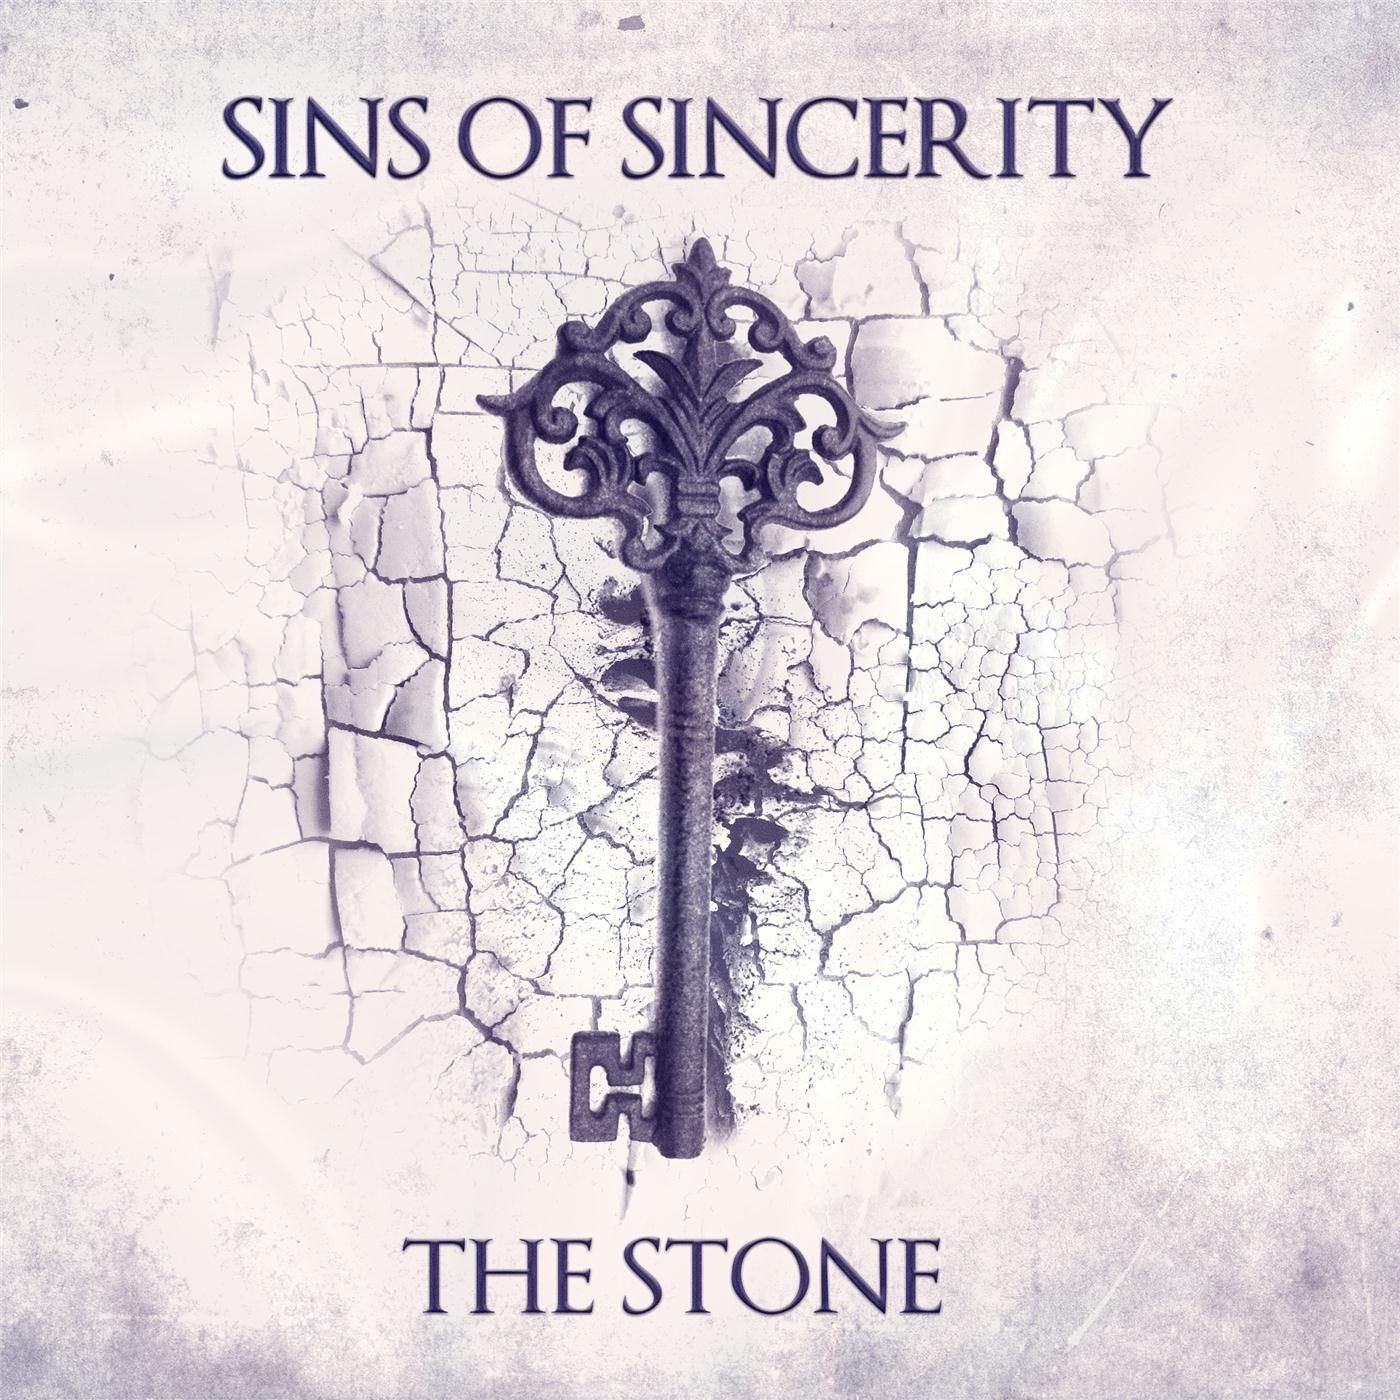 Sins of Sincerity - The Stone [single] (2016)